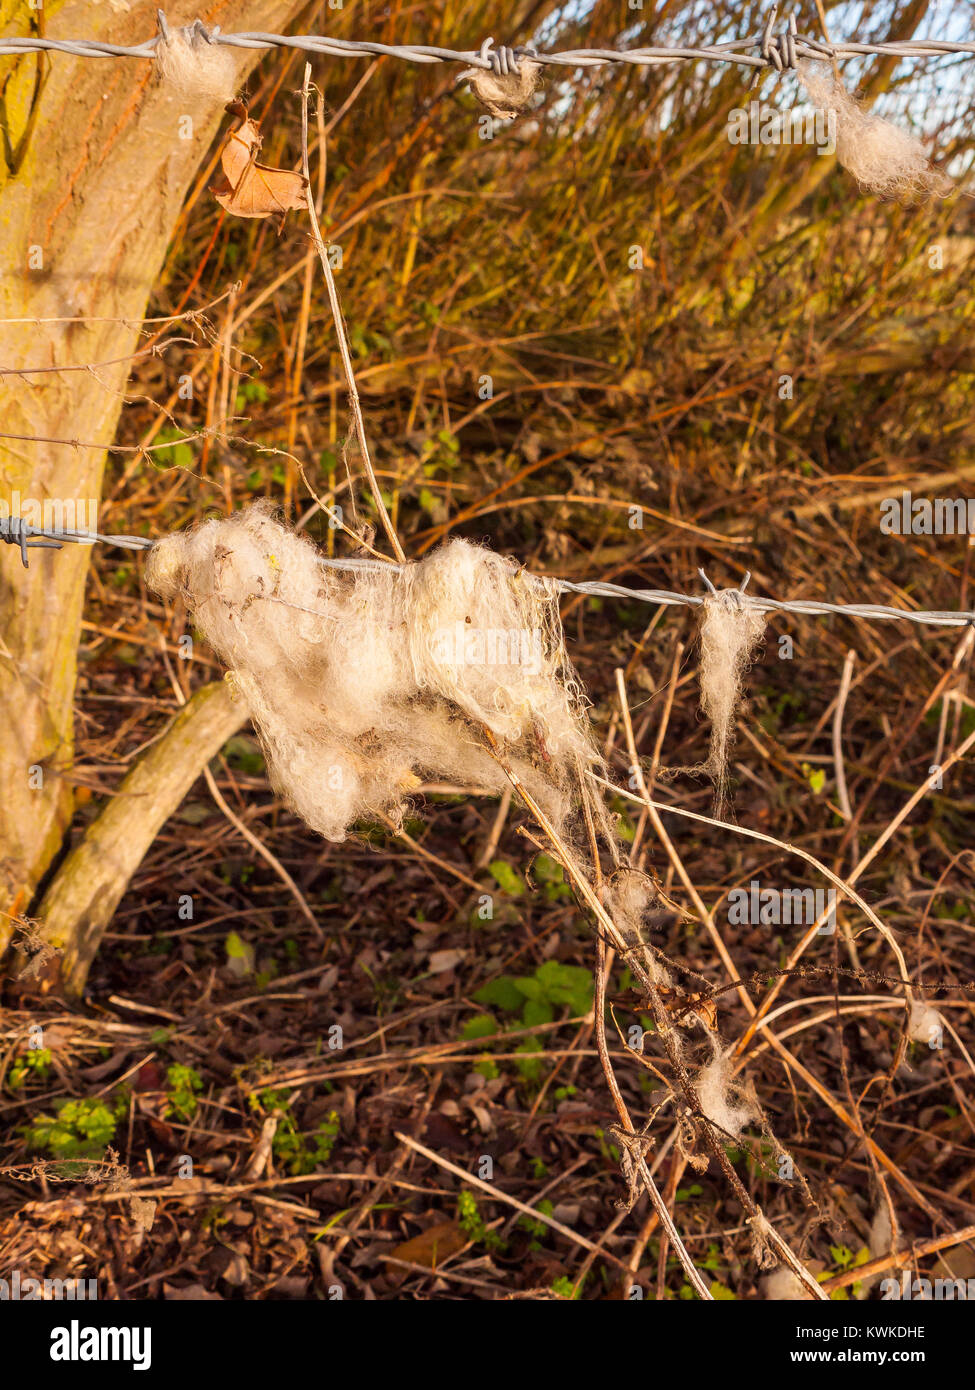 strands tuft of wool in country sheep caught on metal wire barbed wire Stock Photo